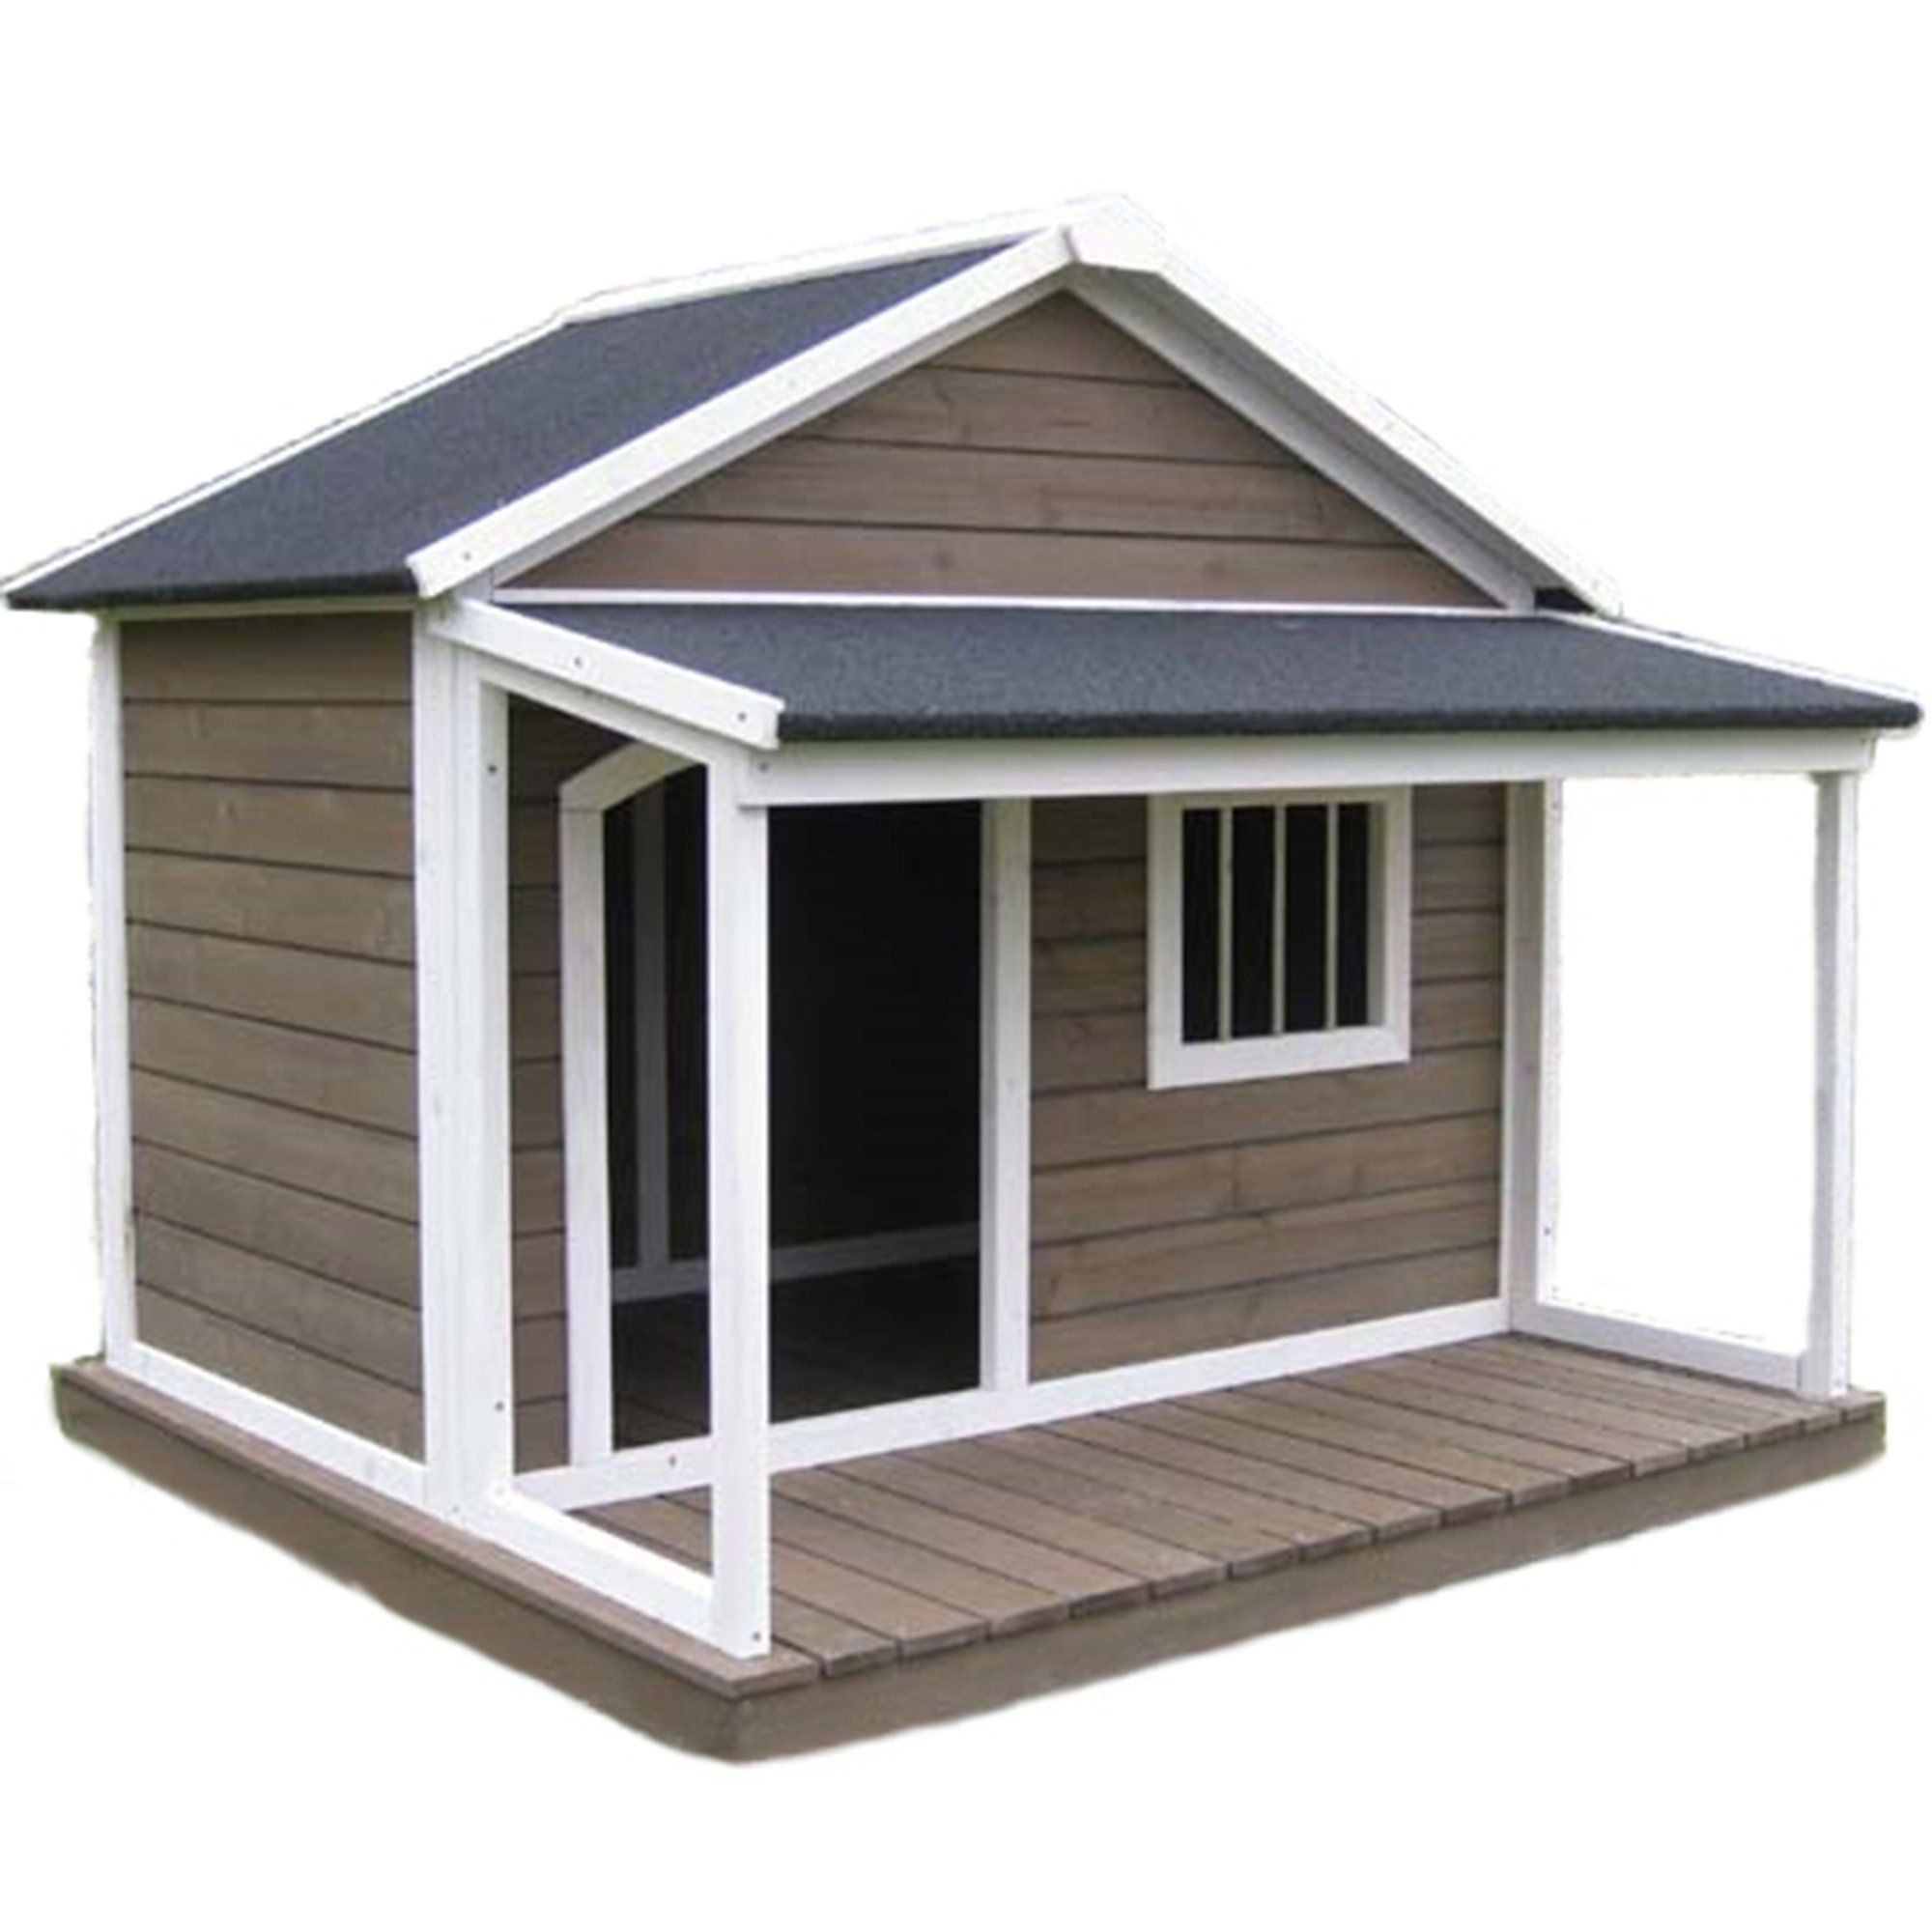 Houses Paws Home Town Pet House Petco Petcodoghouses Dog